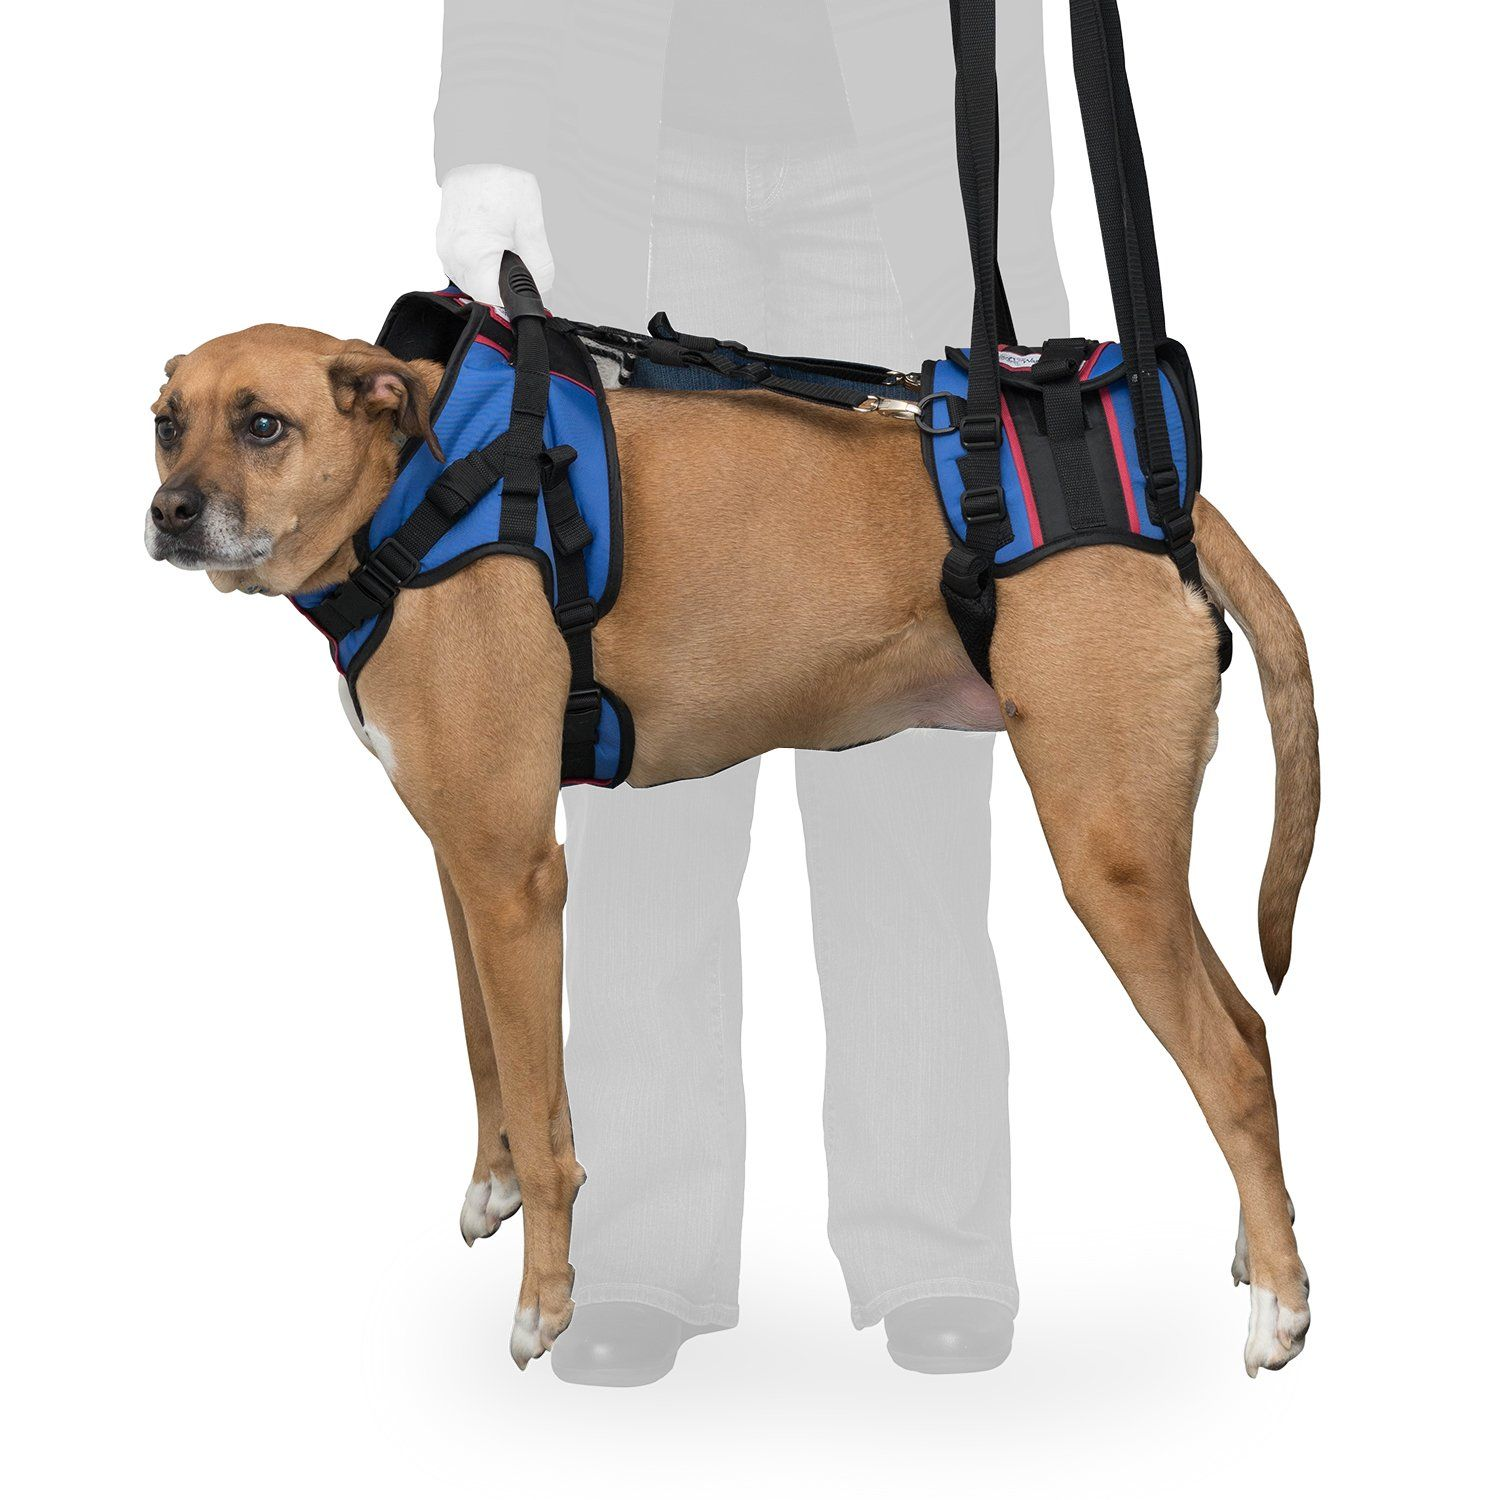 Walkin Lift Full Support Harness For Medium Dogs 5069 Lbs Visit The Image Link More Details It Is Amazon Affiliate L Dog Wheelchair Dog Sling Dog Harness